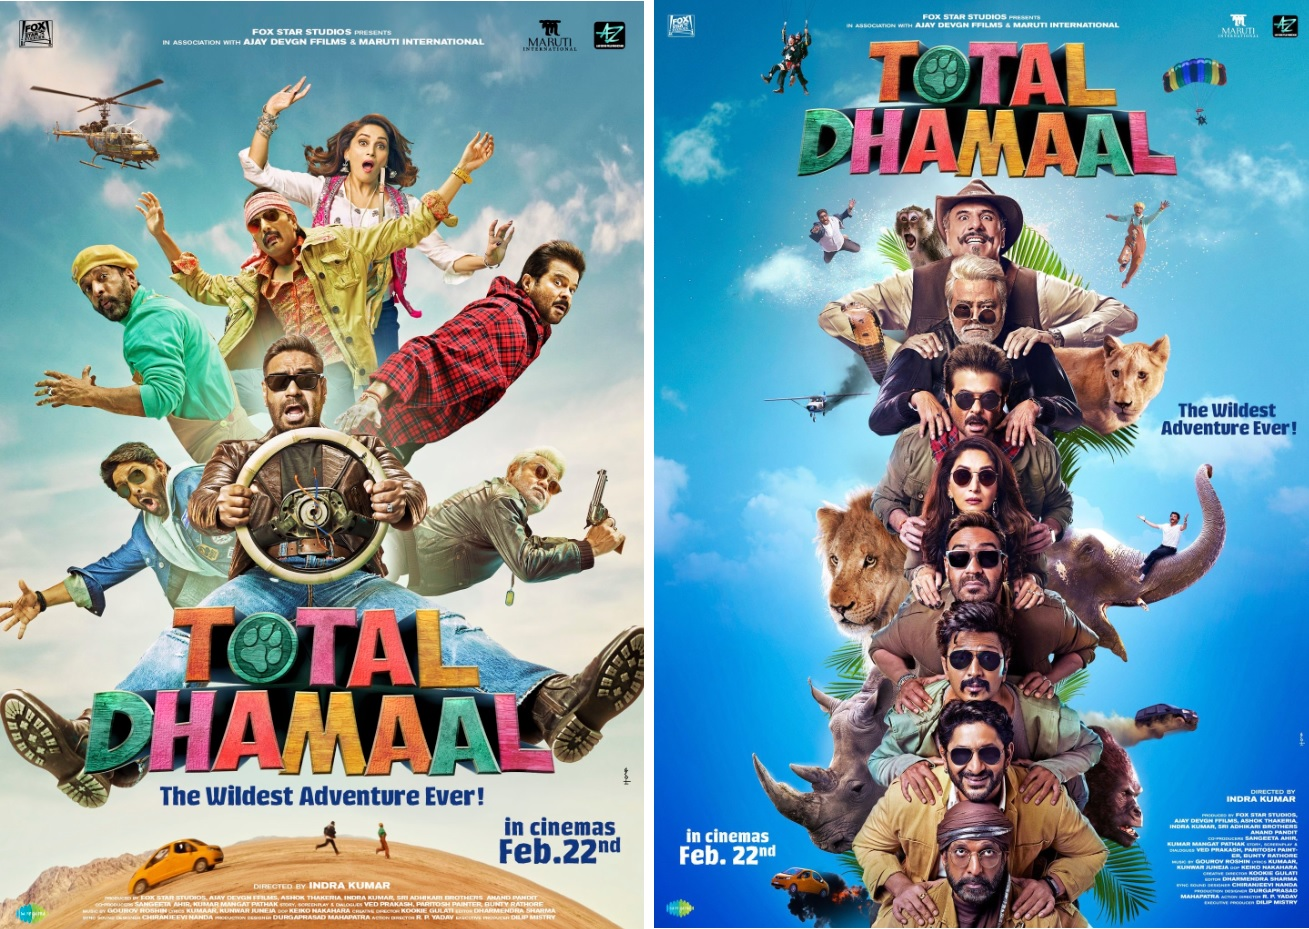 """TOTAL DHAMAAL""- Bollywood's Biggest Comedy Franchise is Back With Its Wildest Adventure Yet!"